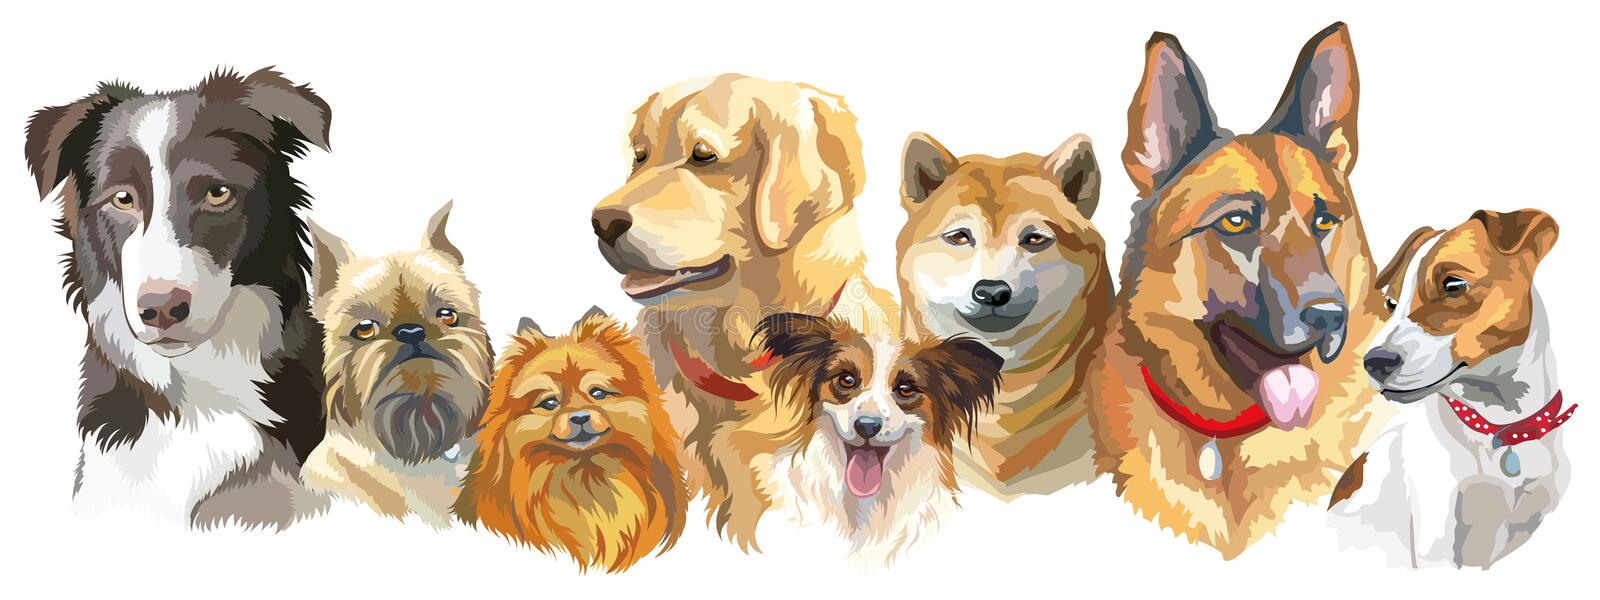 Dog breeds set stock images